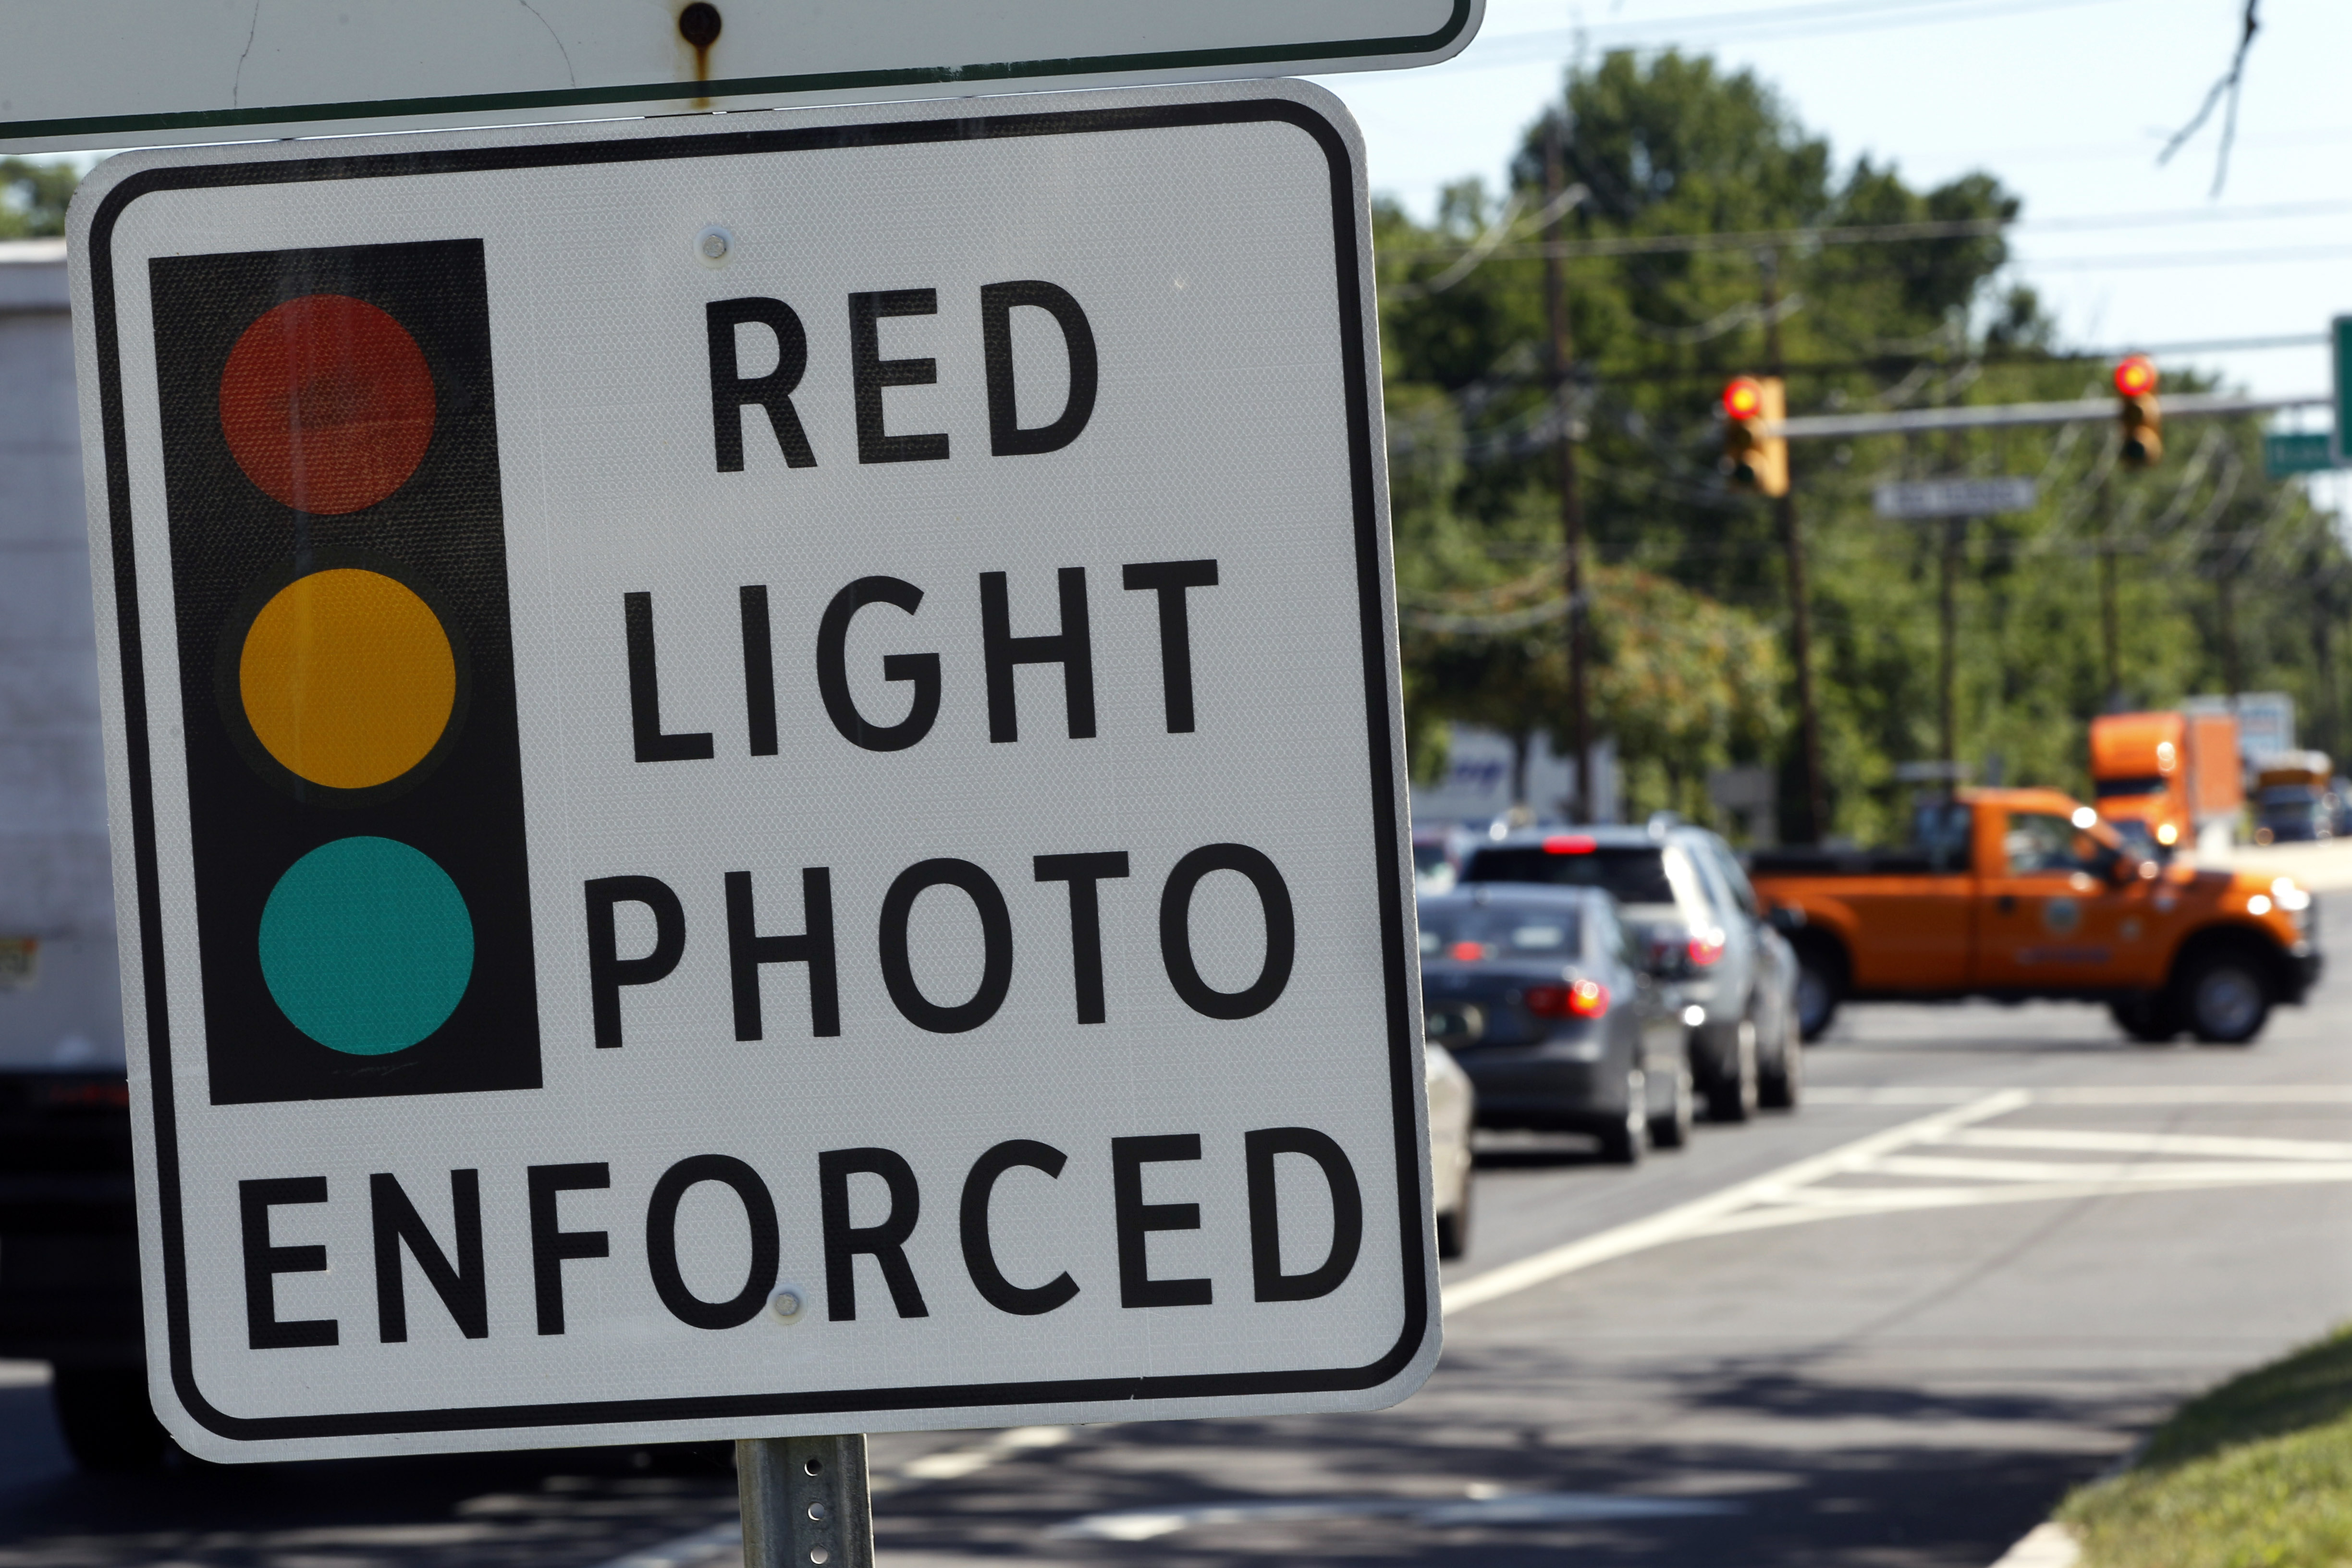 A red light photo enforcement sign is seen on Route 1 in Lawrence Township on July 25, 2012. New Jersey's red light camera pilot program will end Dec. 16, 2014.